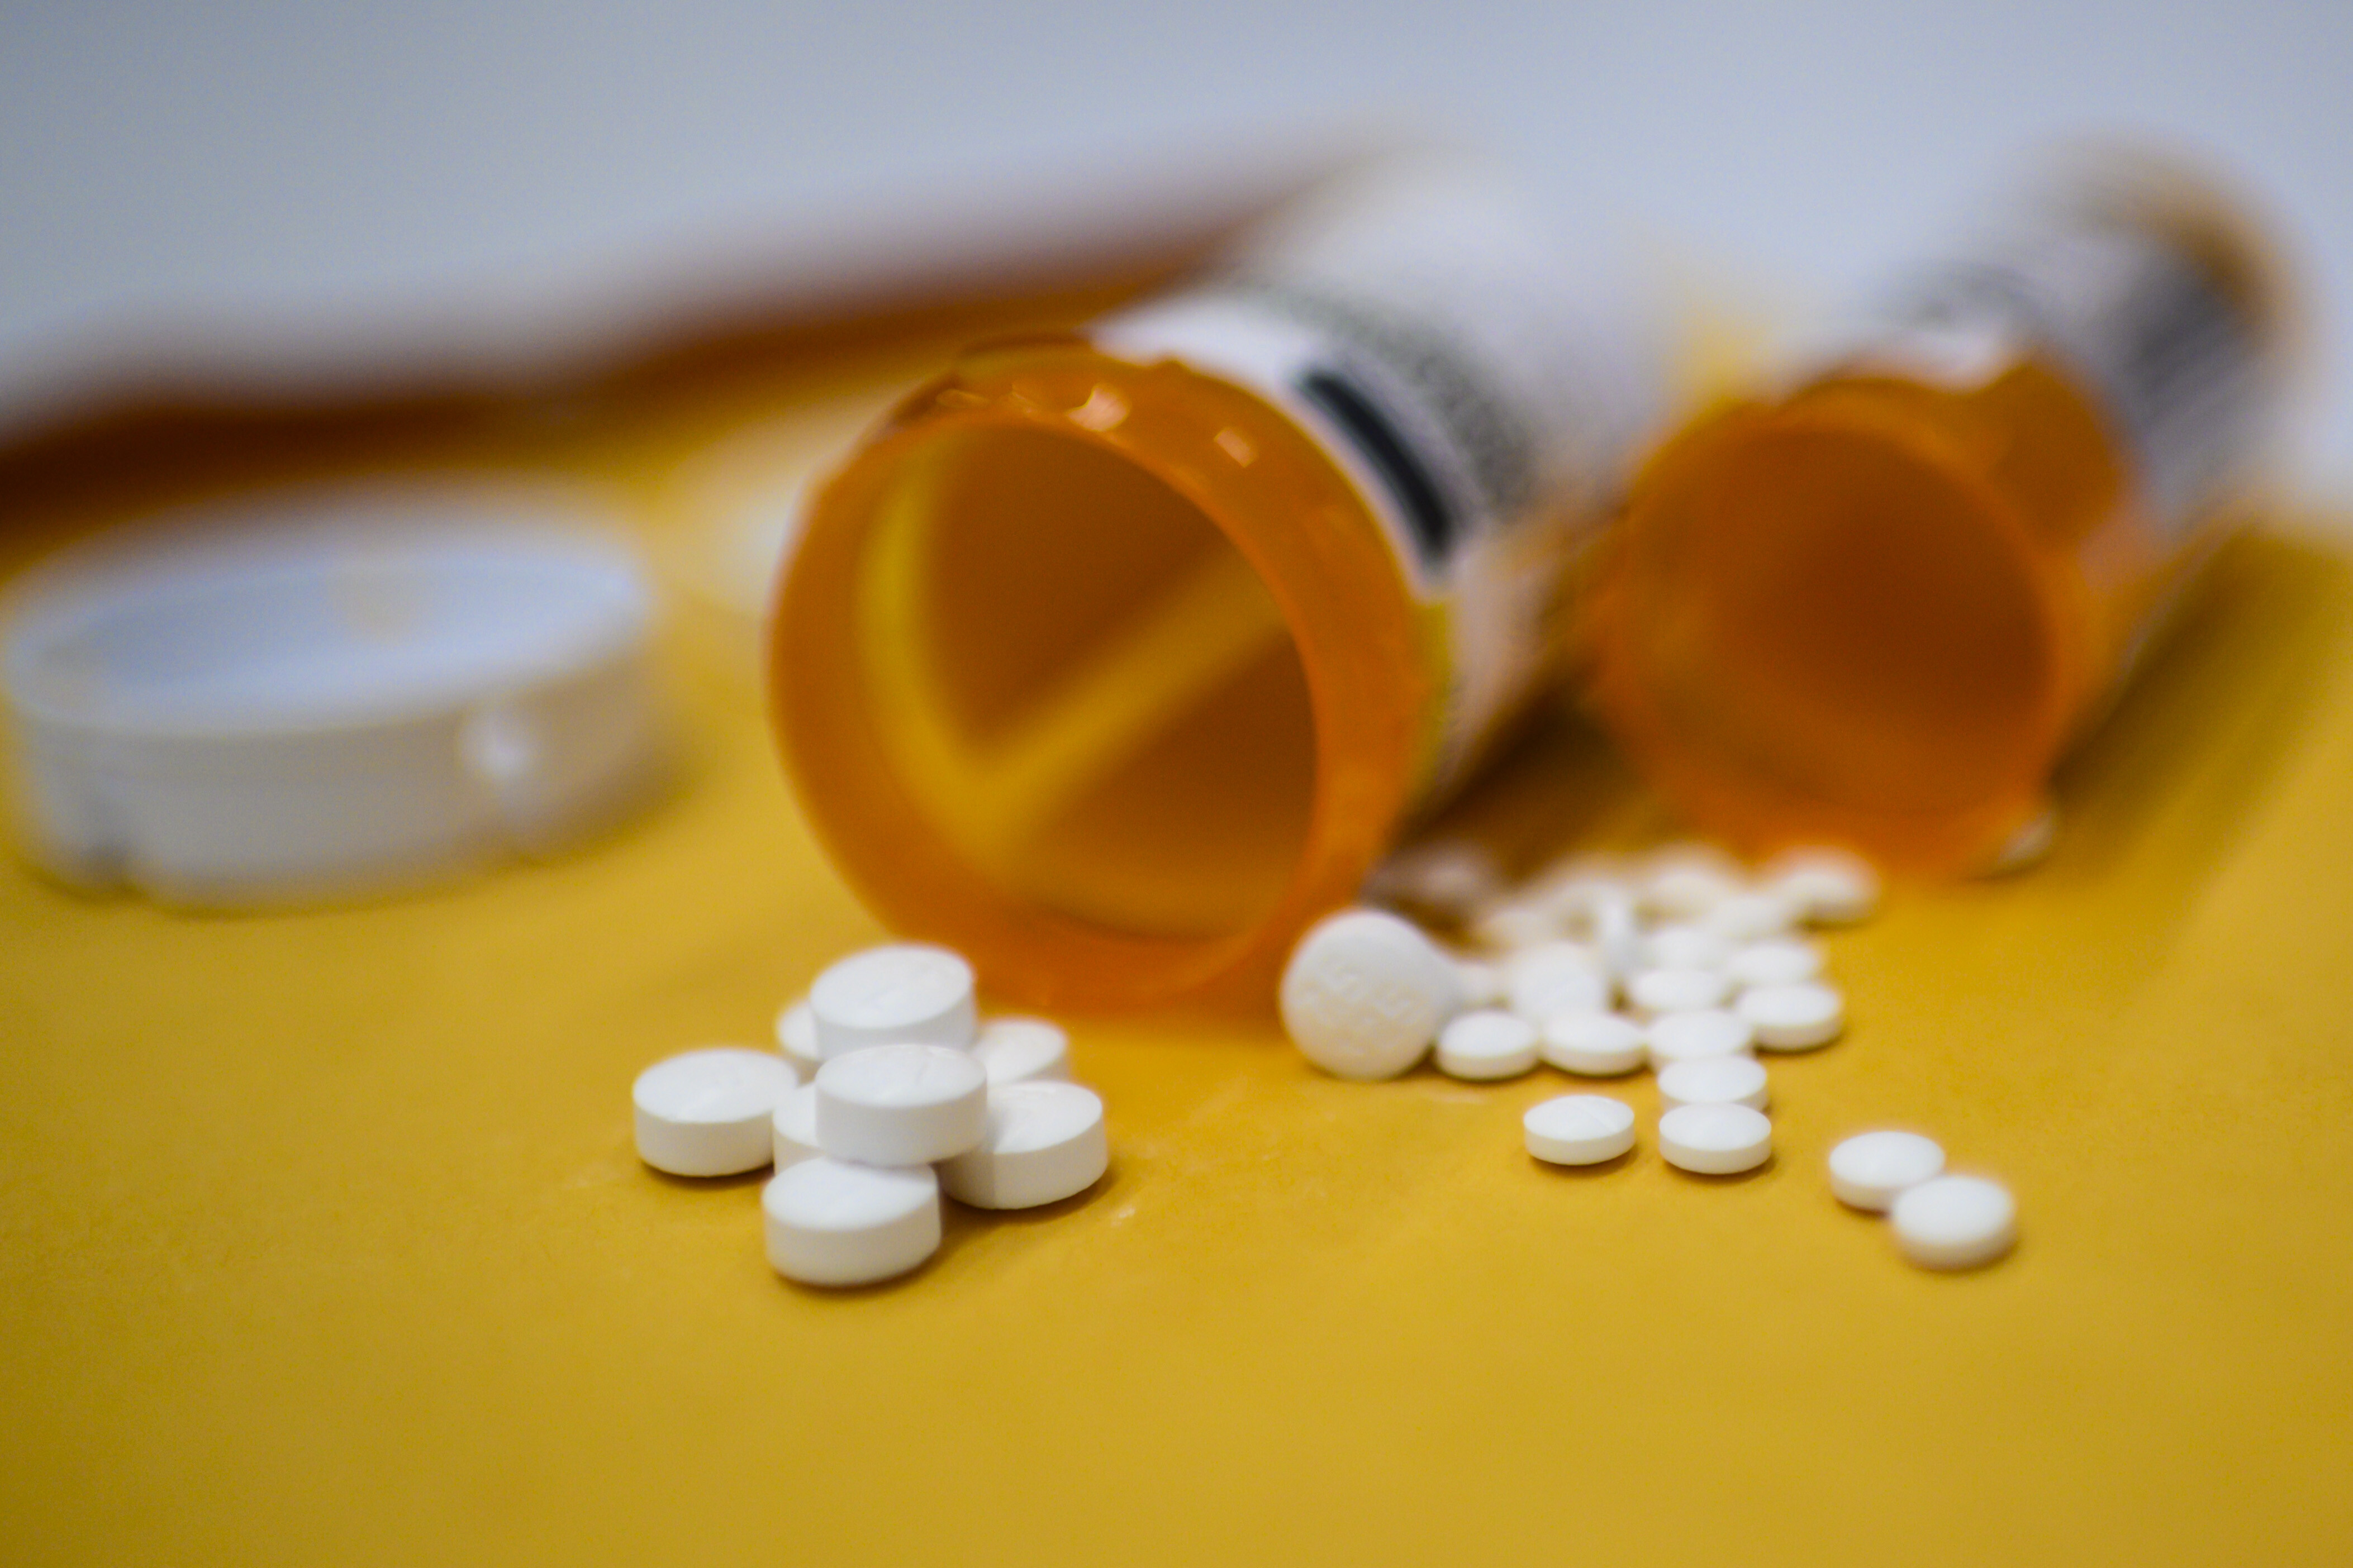 An epidemic in the shadow of a pandemic: Drug overdose deaths reach an all-time high in US